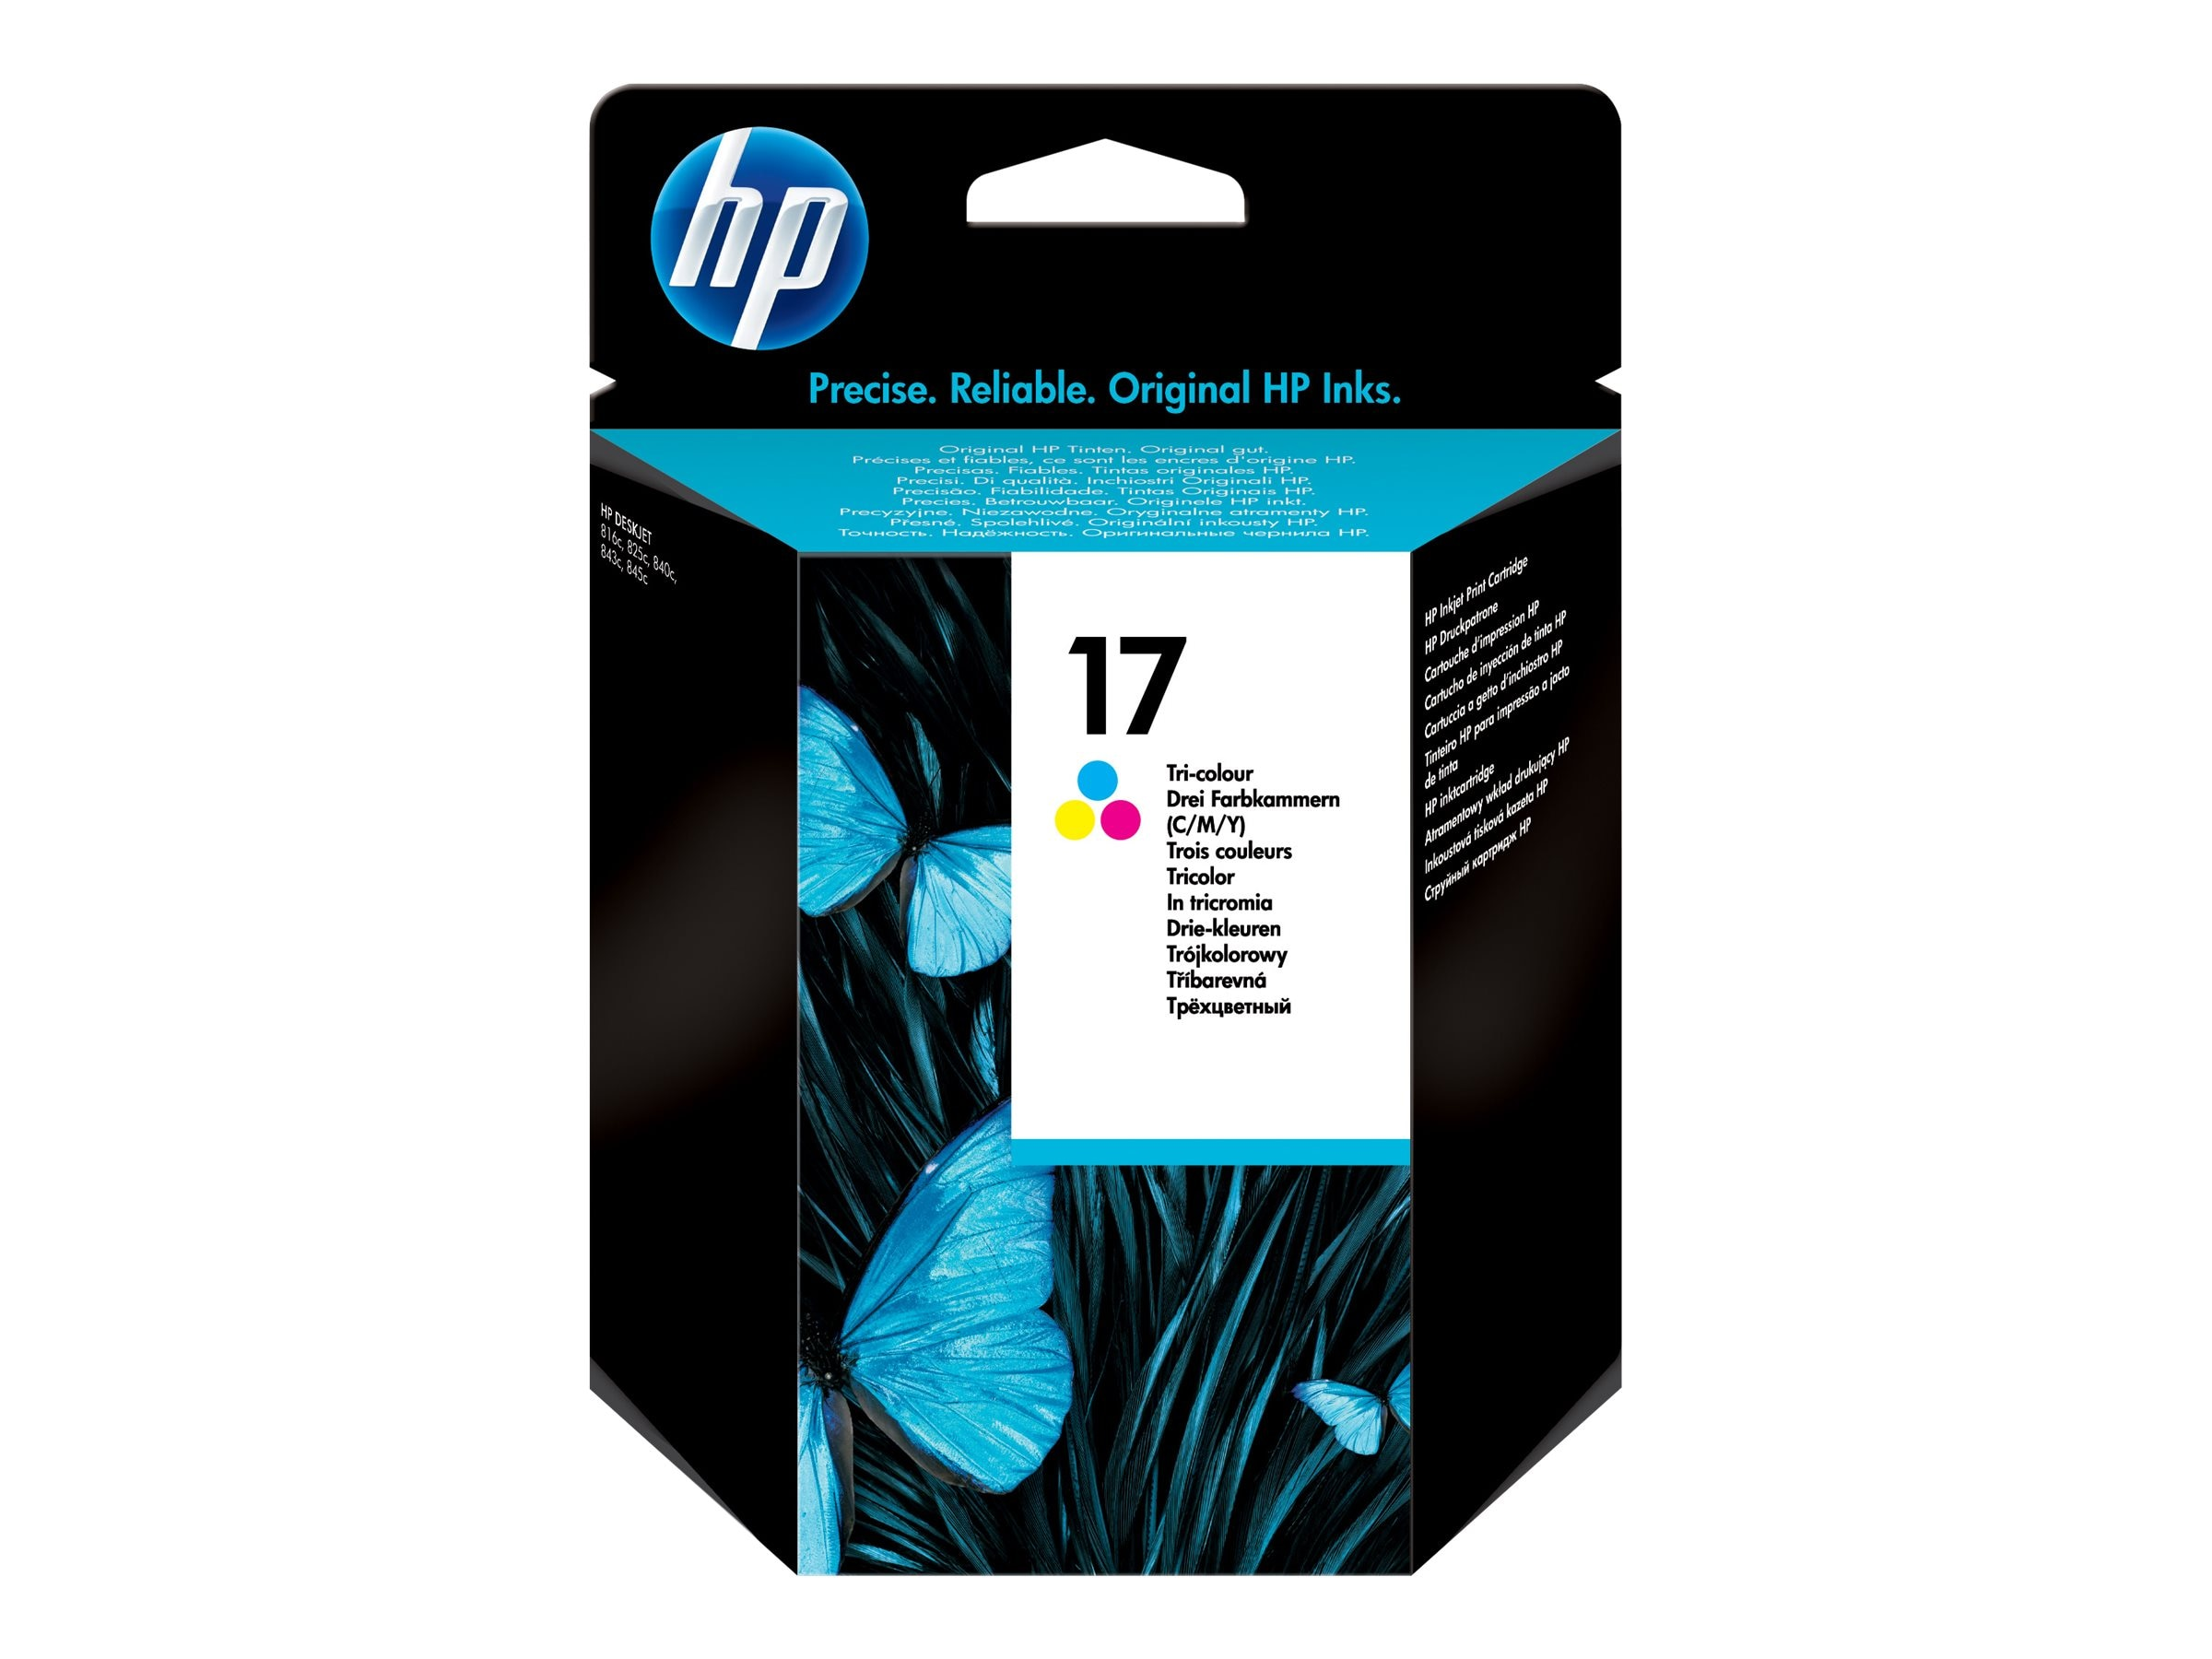 HP 17 (C6625A) Tri-color Original Ink Cartridge, C6625A, 7094311, Ink Cartridges & Ink Refill Kits